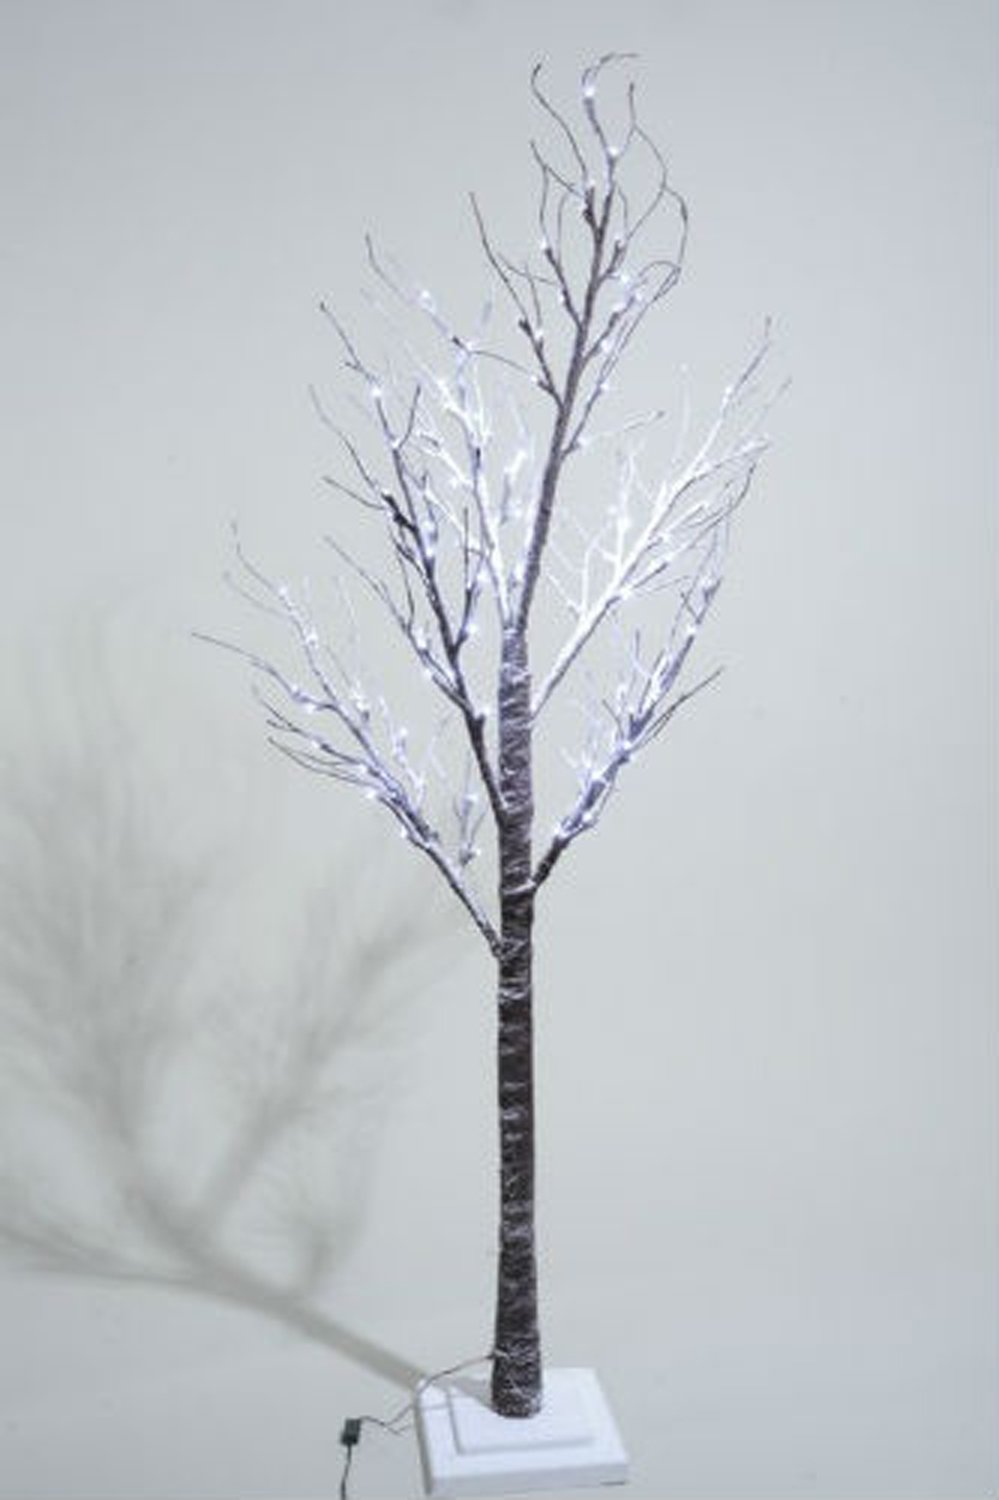 LED Tree with Snow Outdoor 200cm-120L: Amazon.co.uk: DIY & Tools